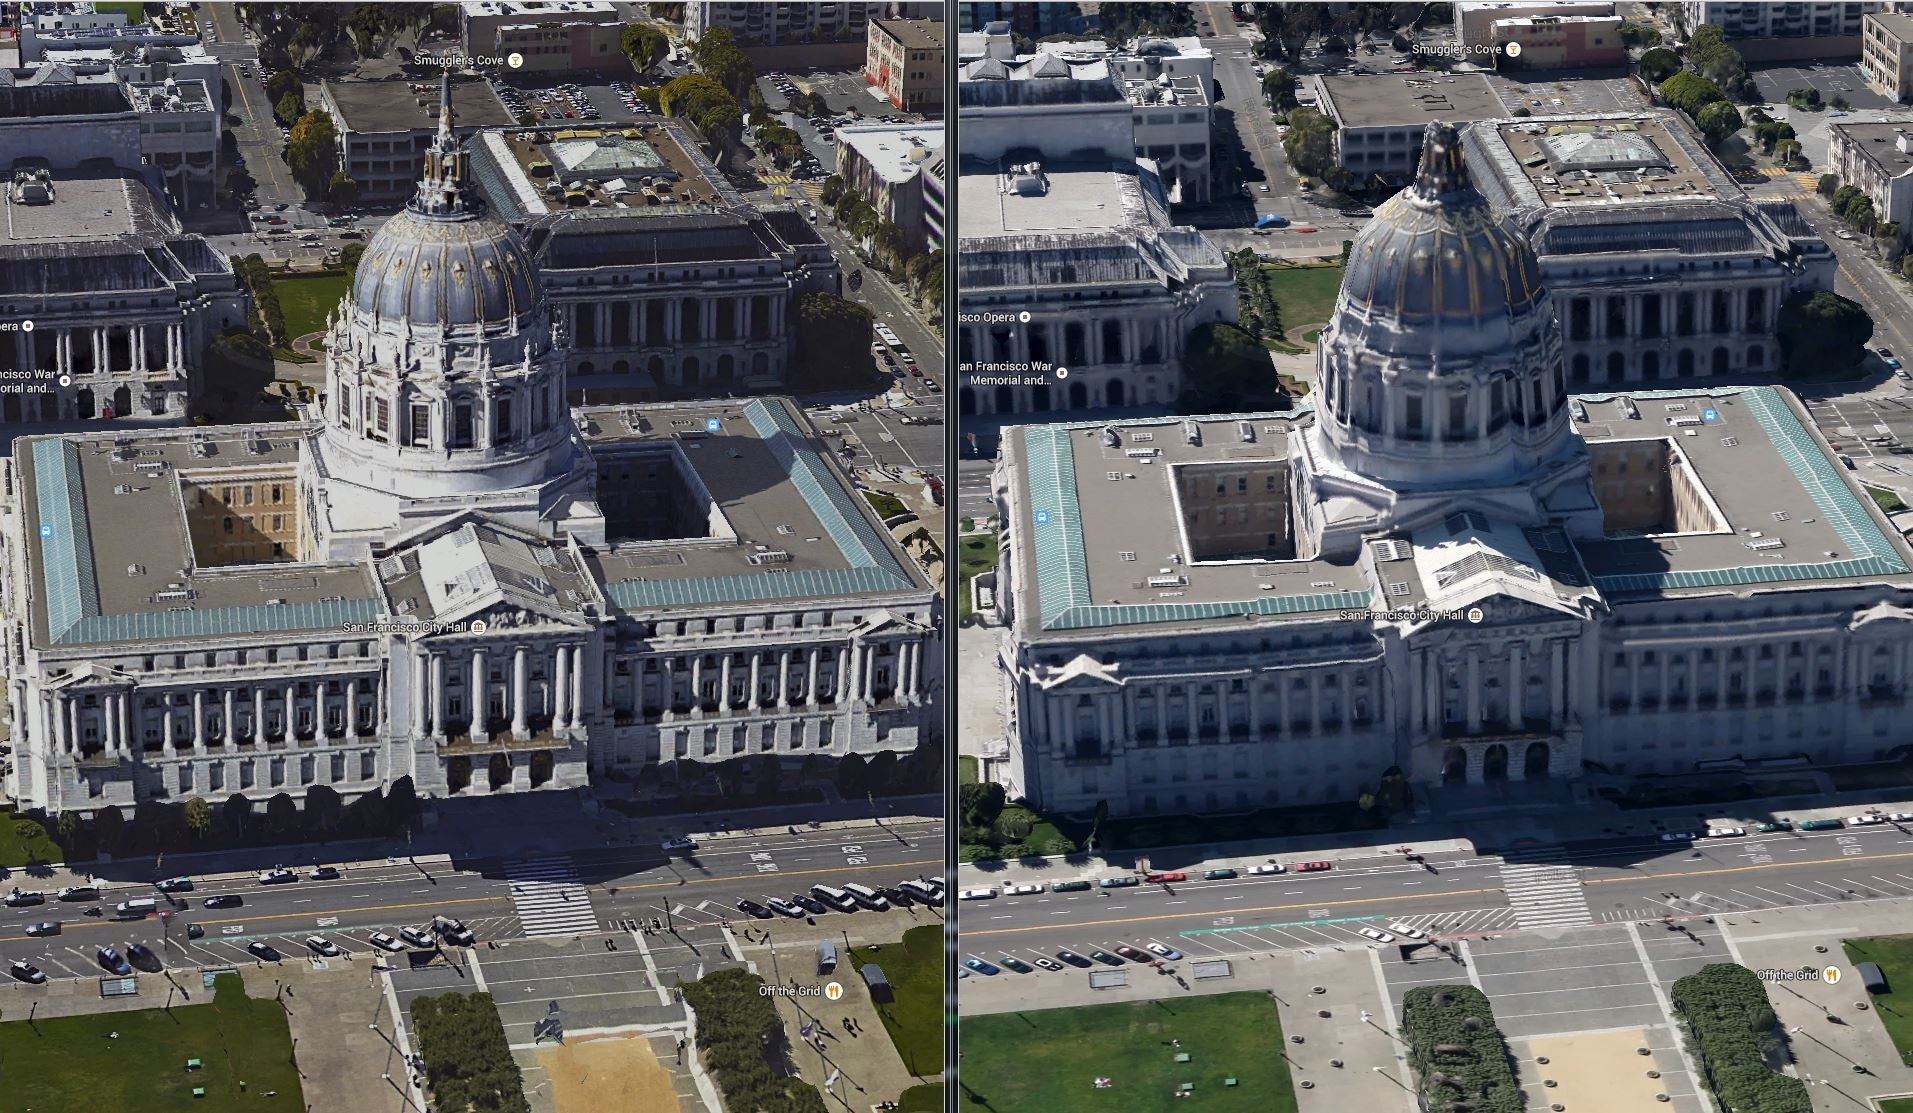 Google Earths New Satellite Imagery Is So Much Better Gizmodo - Google earth satellite map